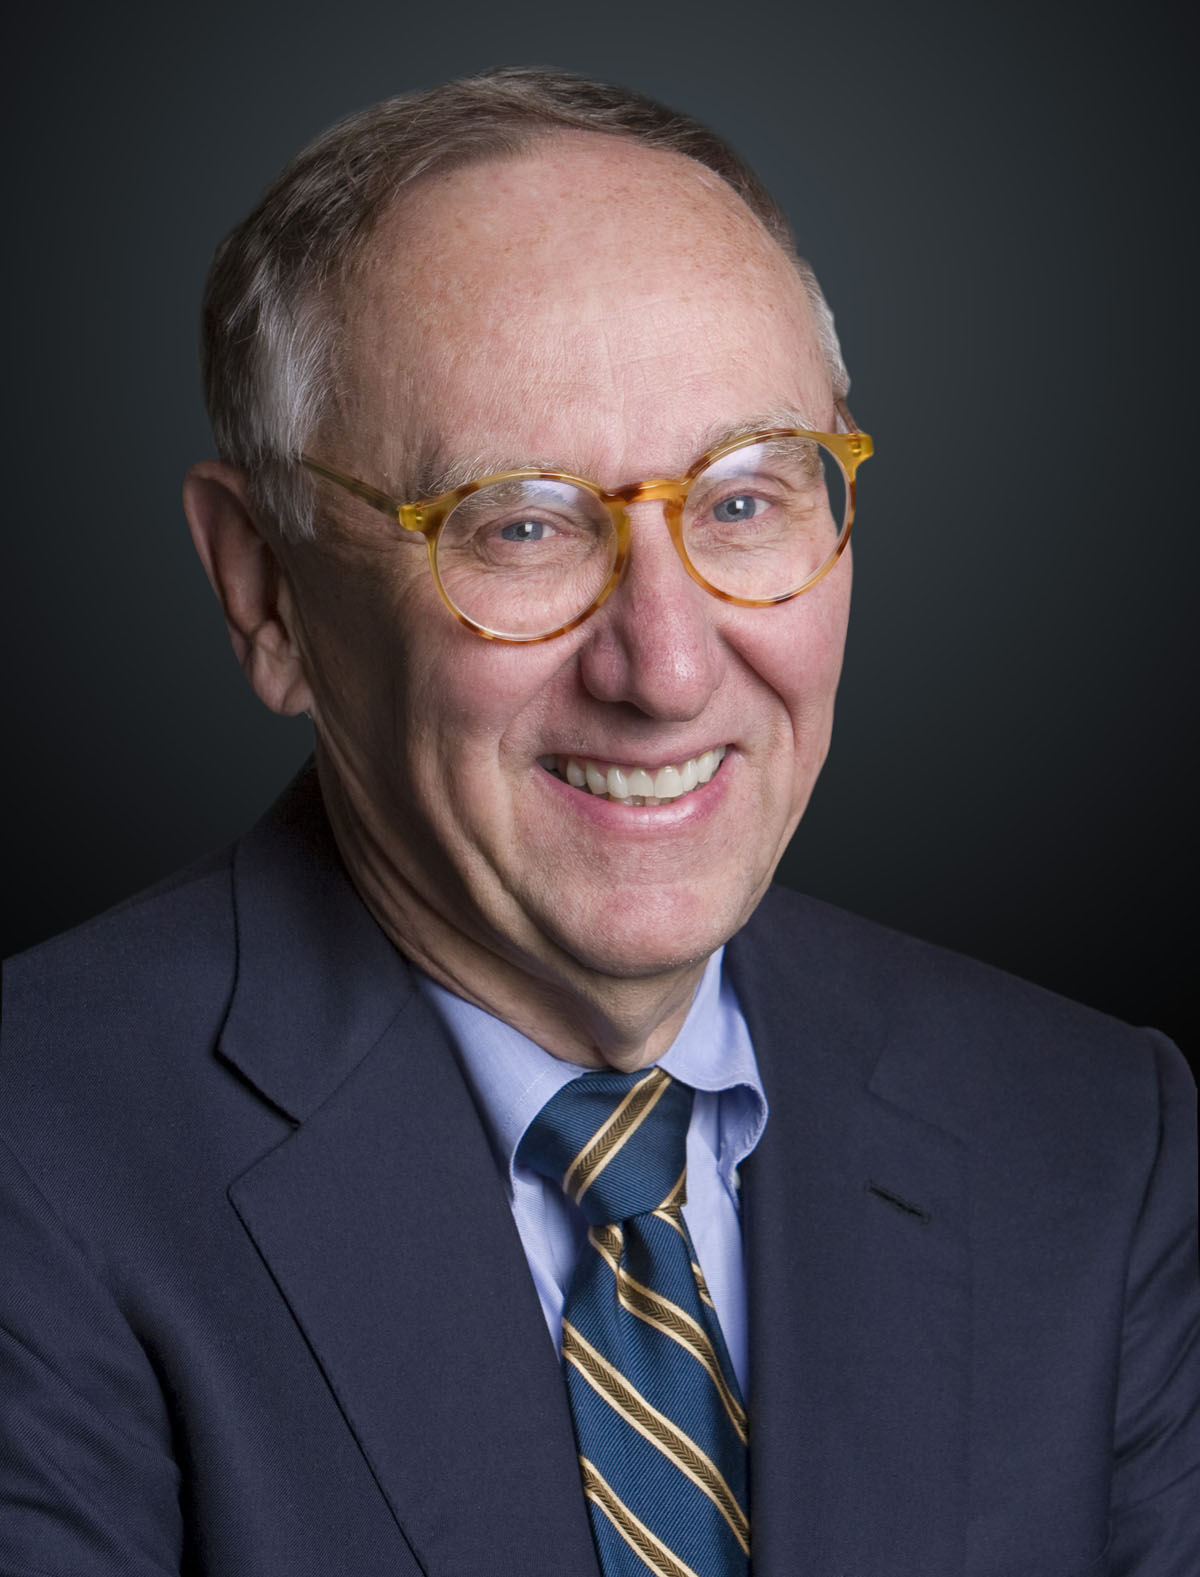 Jack Dangermond, president of Esri, receives honorary Doctor of Science degree from the University of Massachusetts Boston.